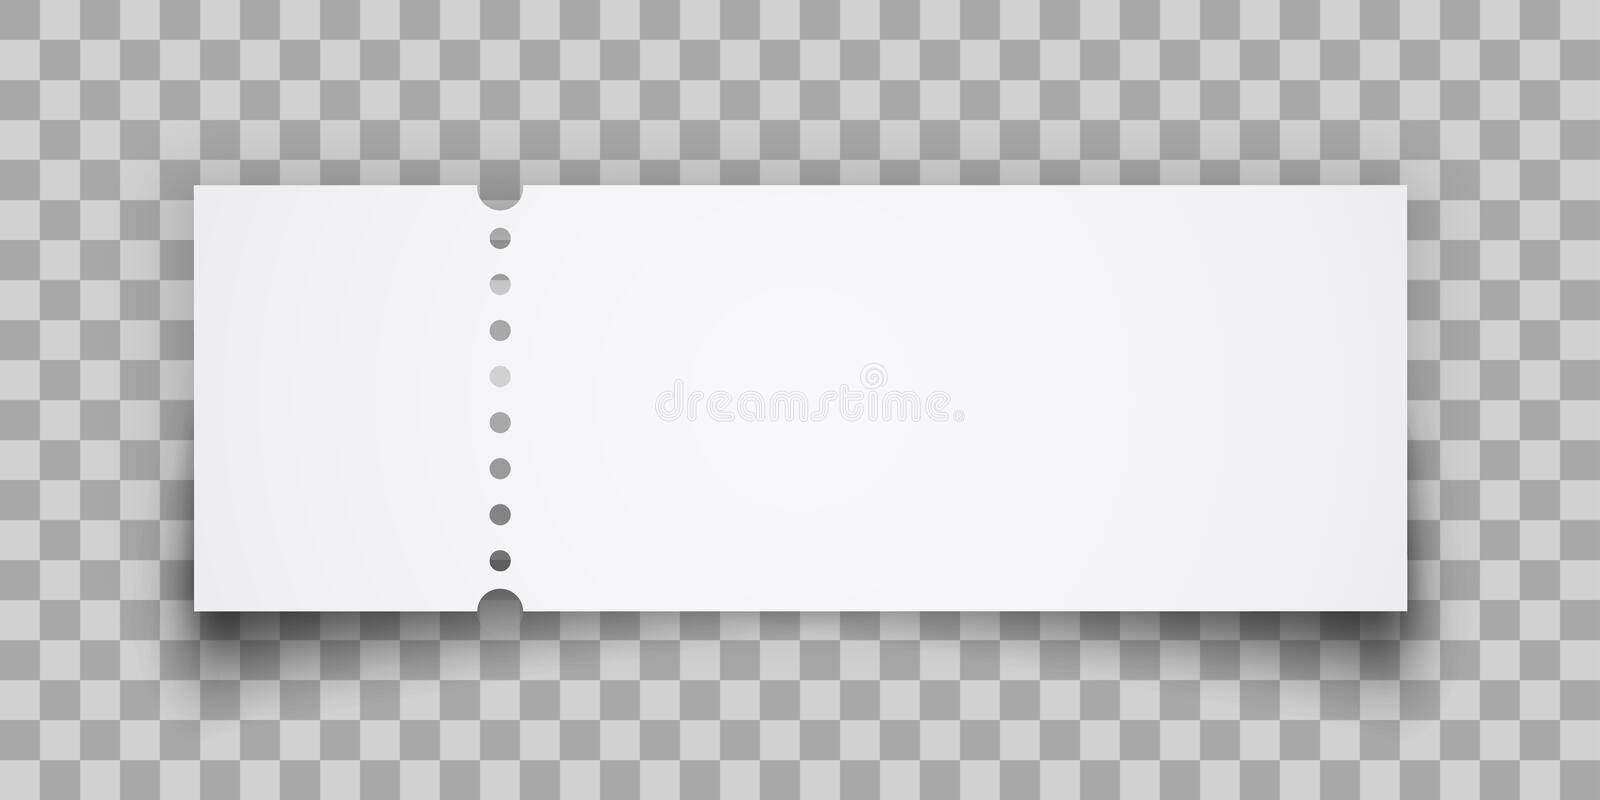 Free Editable Concert Ticket Template from thumbs.dreamstime.com